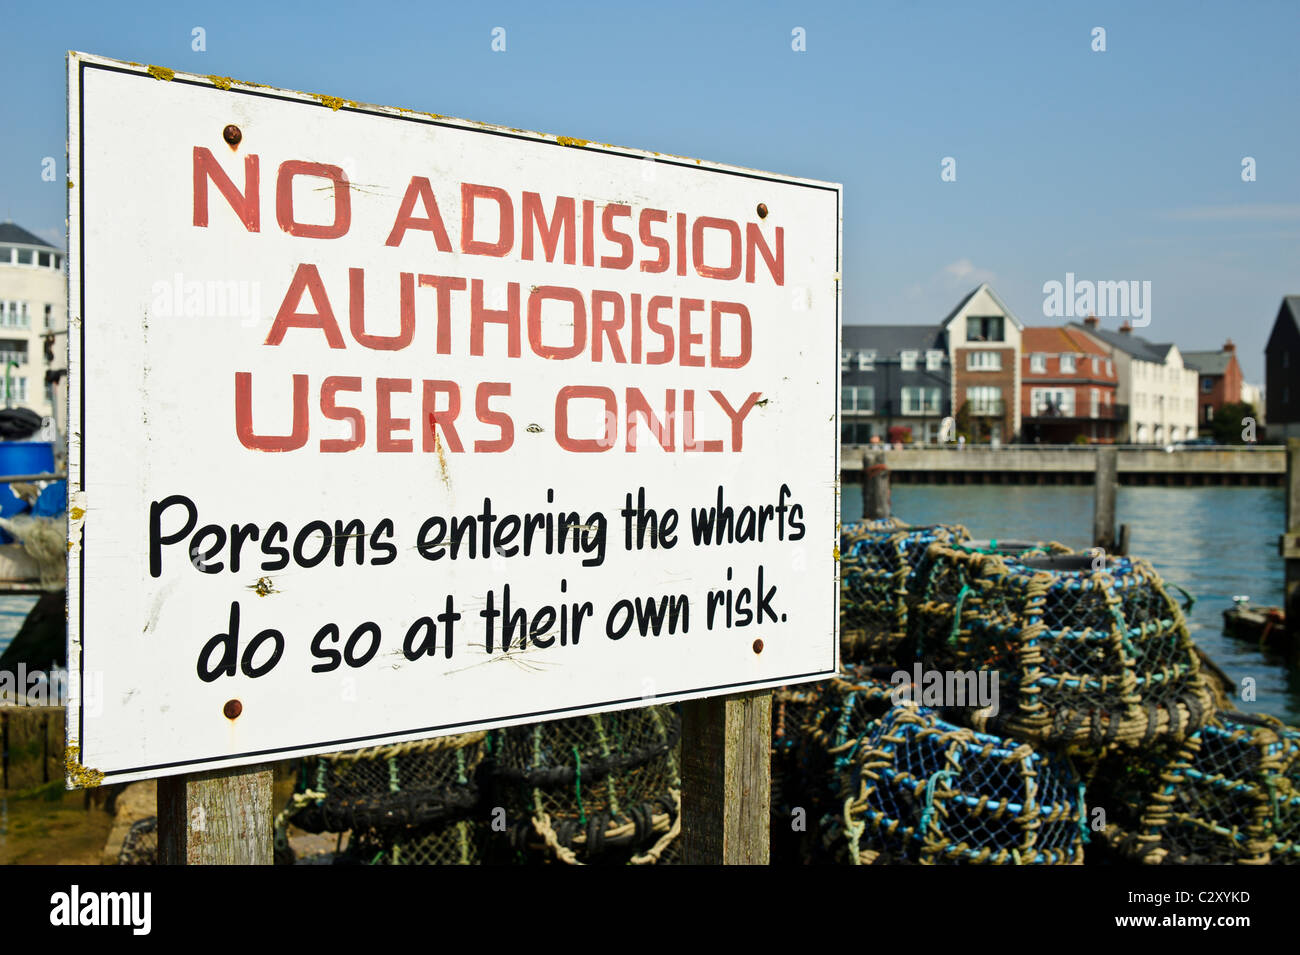 A 'No Admission' sign advising access to a wharf on the River Arun. Littlehampton, West Sussex. - Stock Image